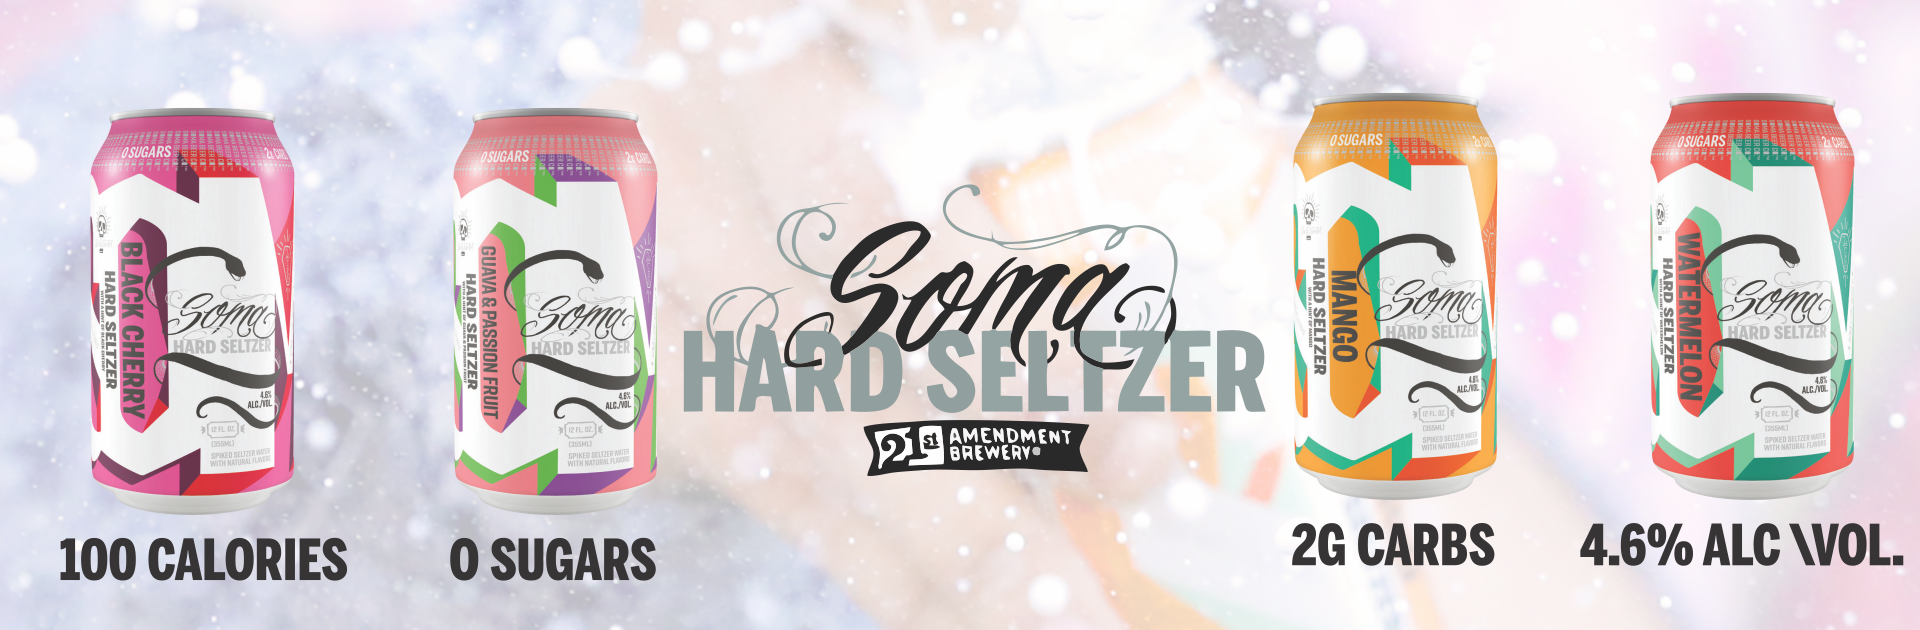 21st Amendment Brewery Announces Release of SOMA Hard Seltzer in 32 States